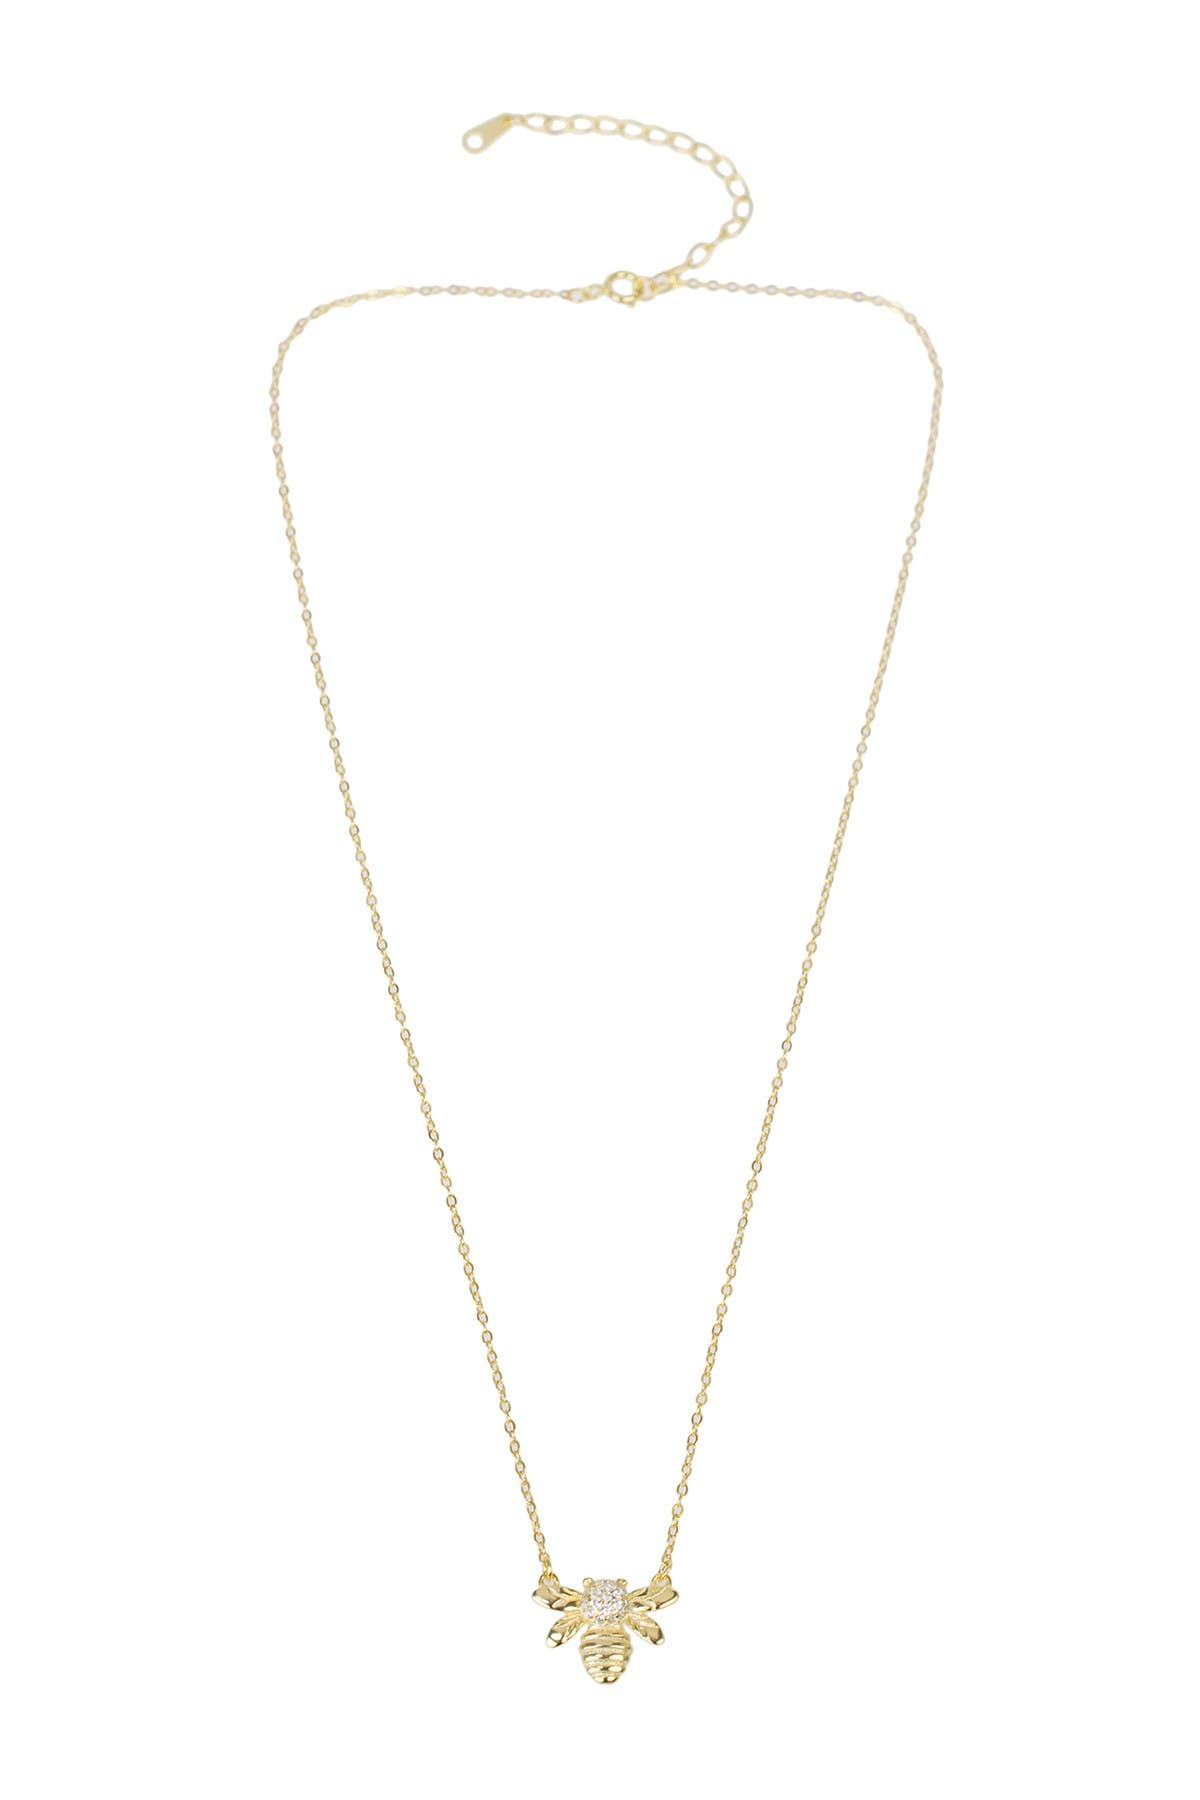 Image of CZ By Kenneth Jay Lane CZ Bee Necklace